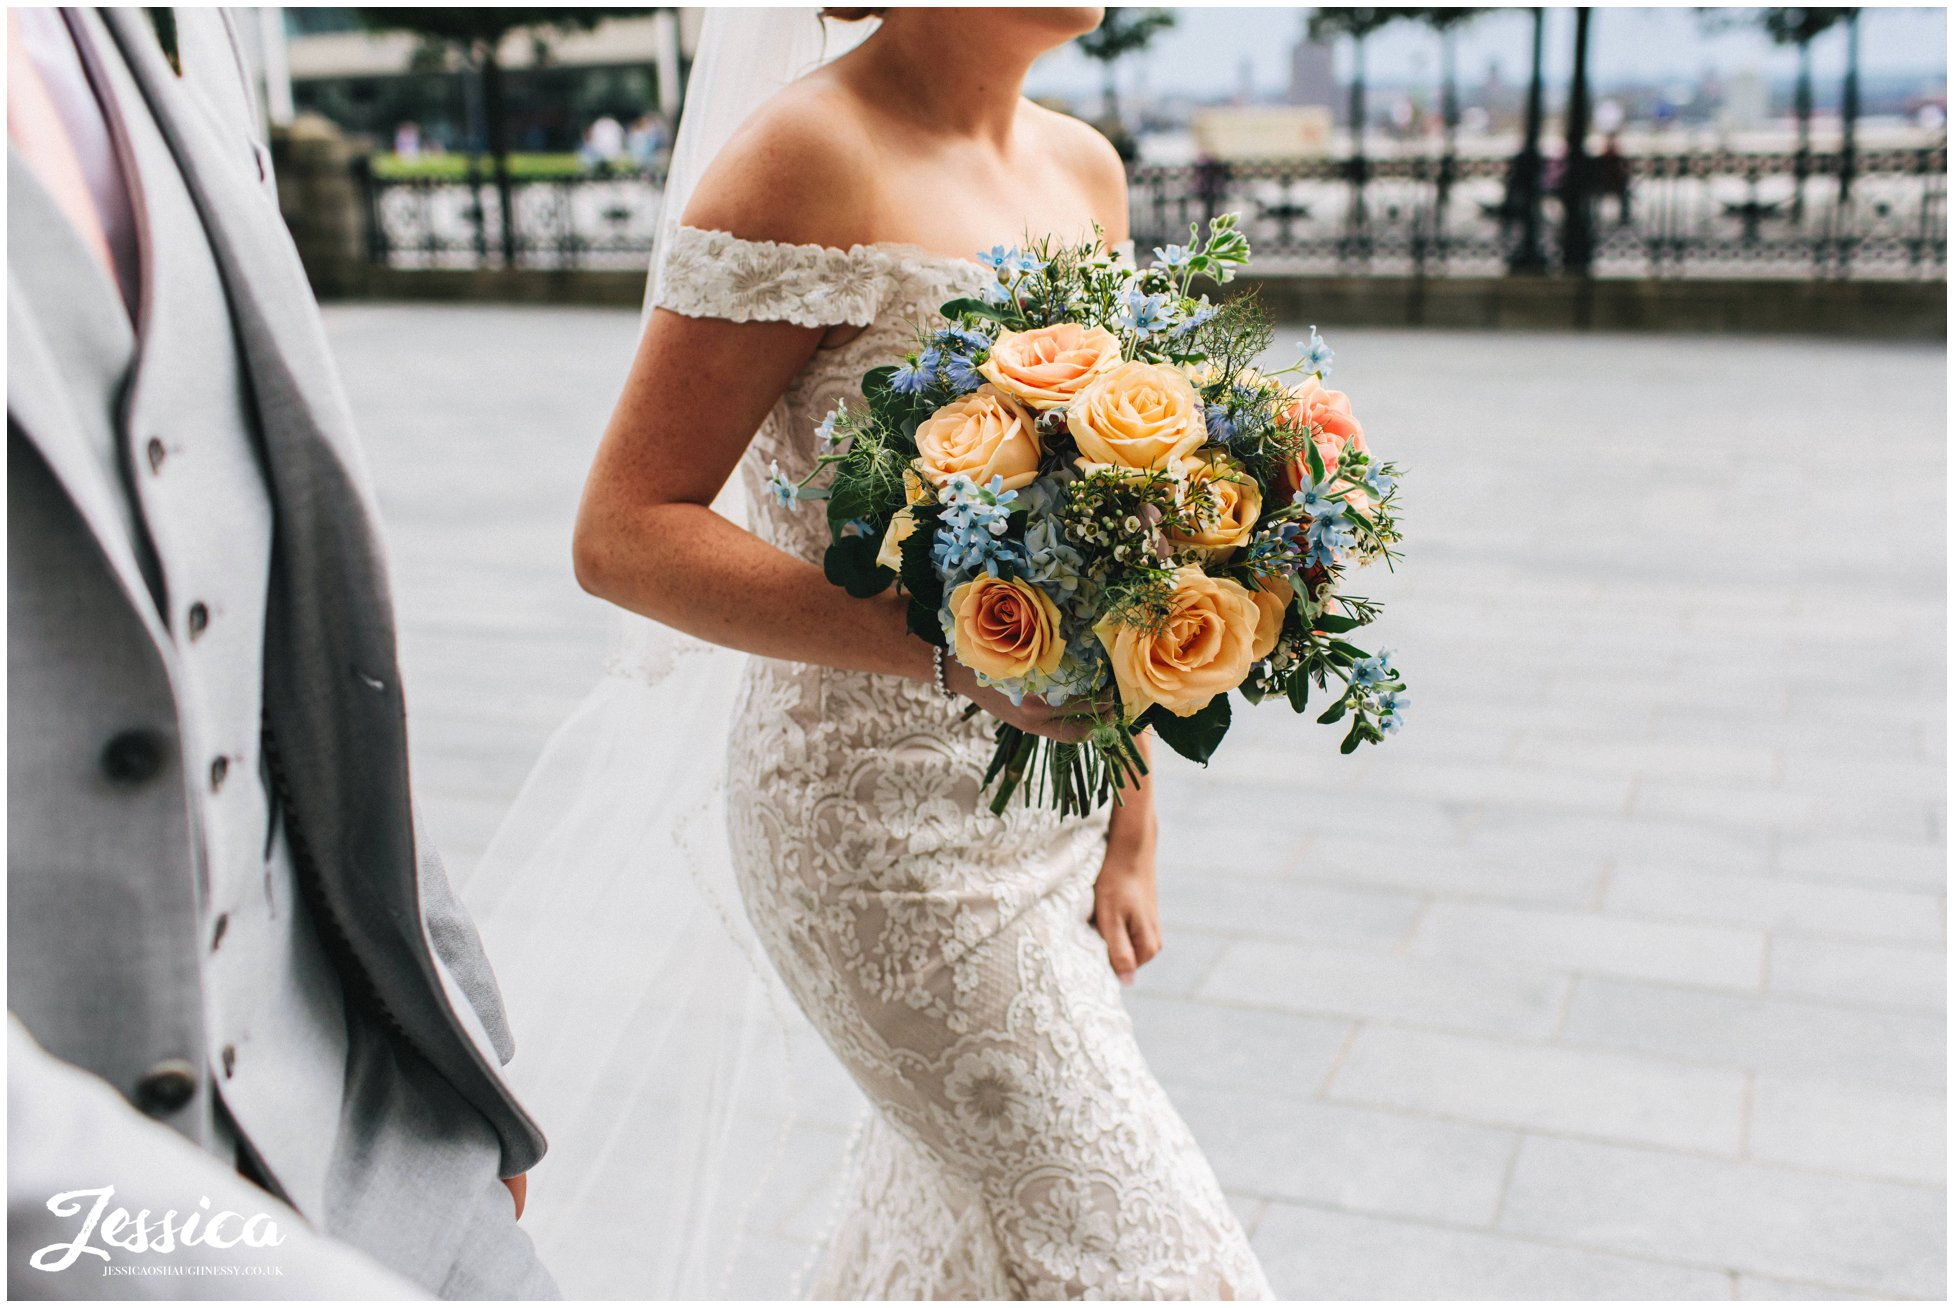 the bride carries blue & peach bouquet